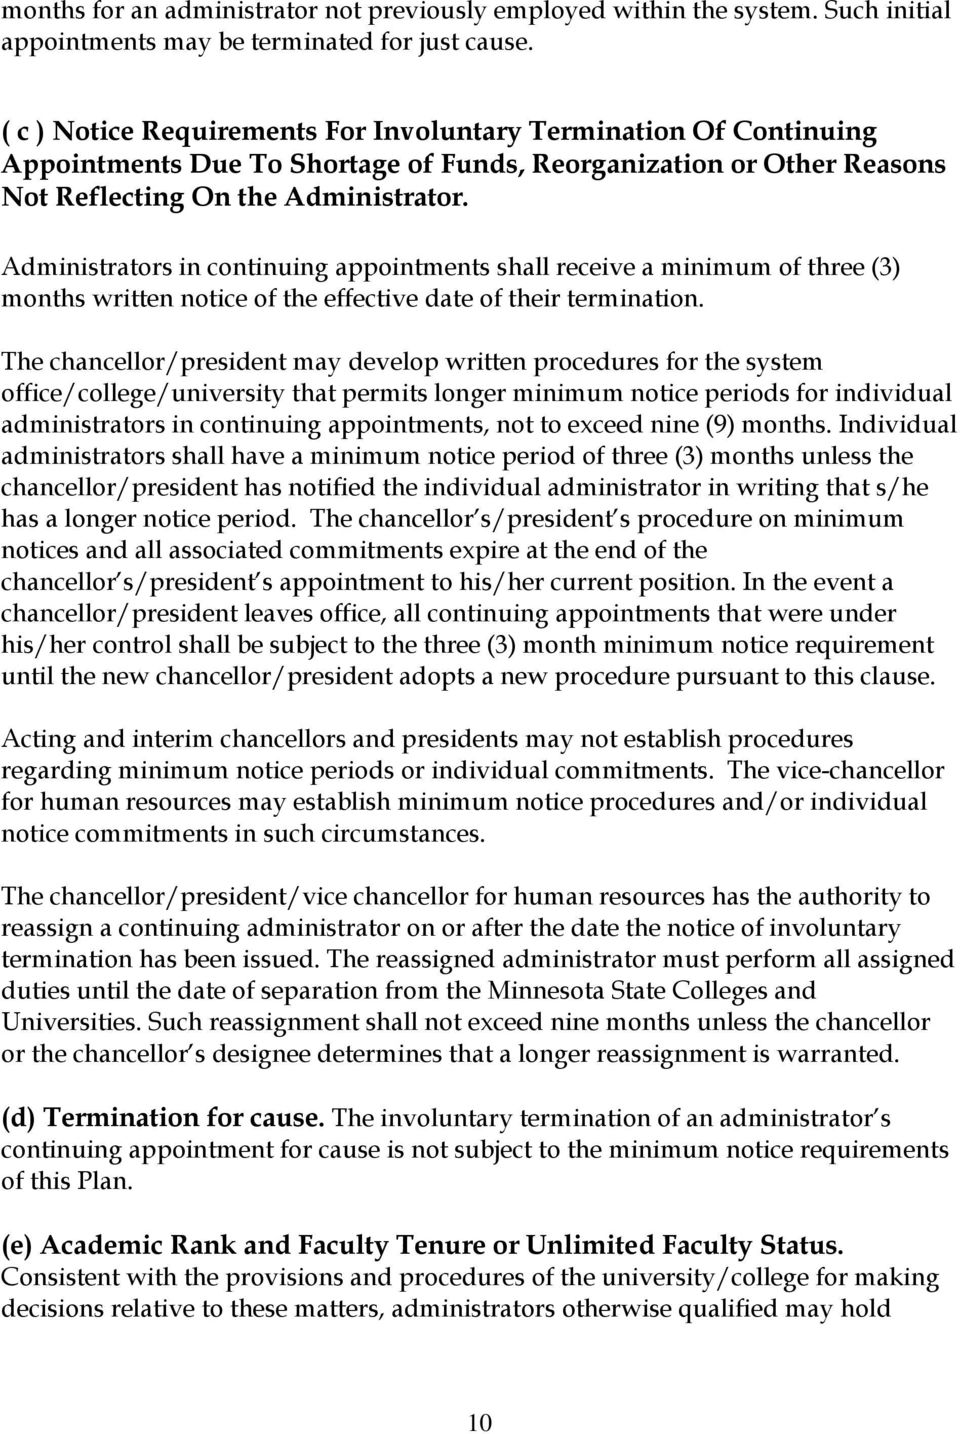 Administrators in continuing appointments shall receive a minimum of three (3) months written notice of the effective date of their termination.